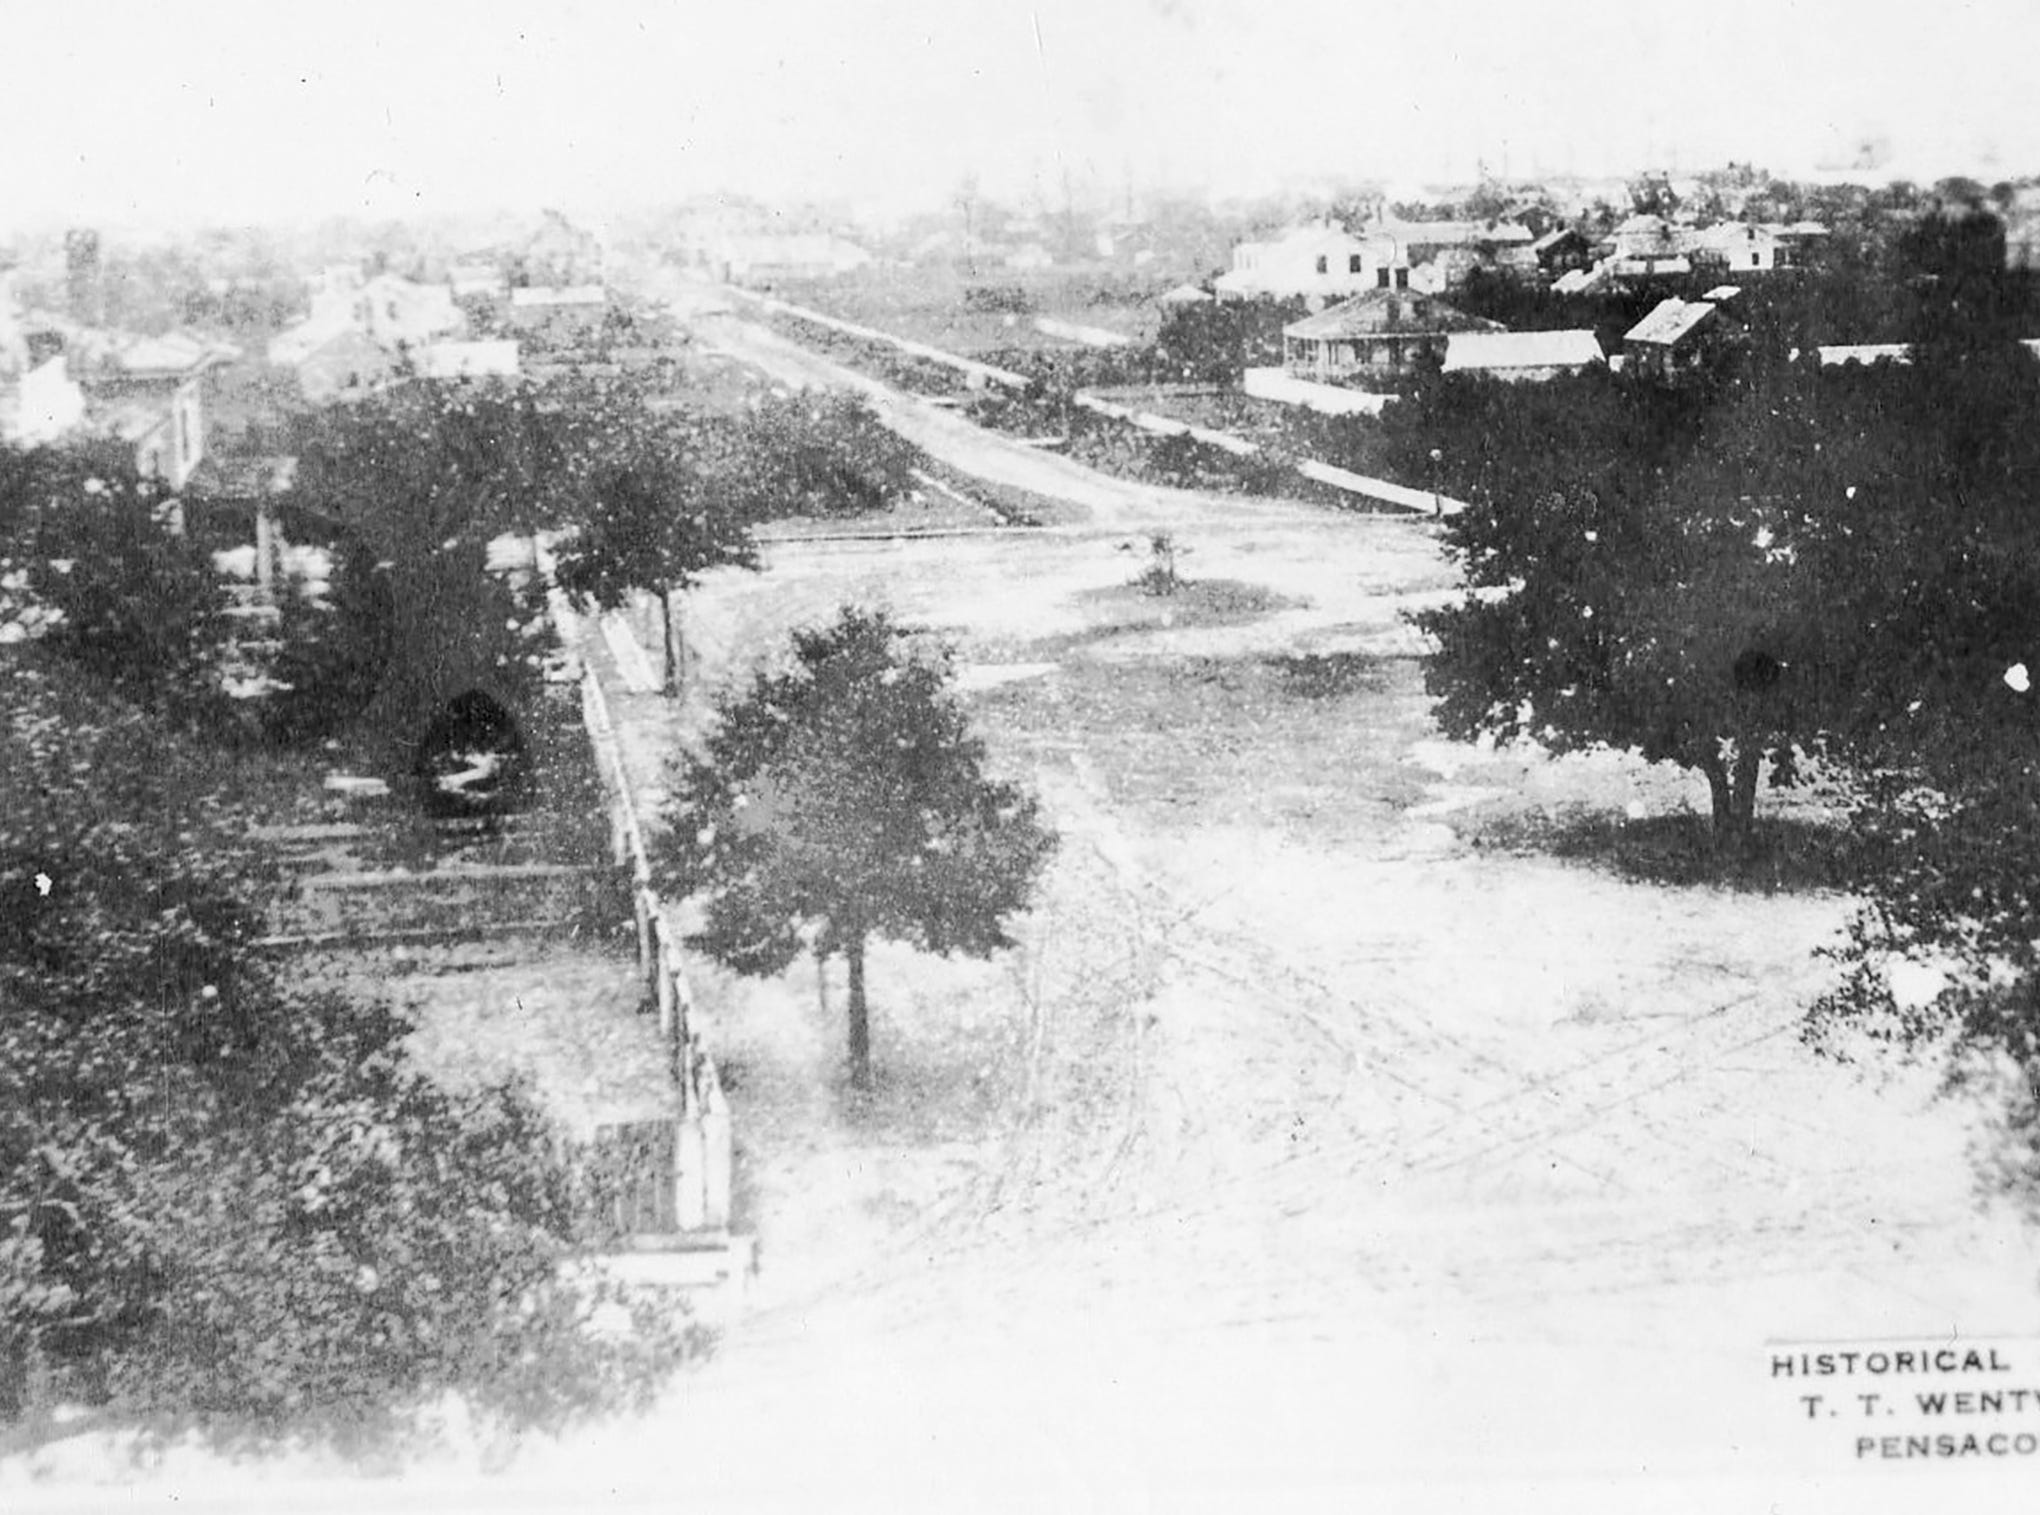 Palafox Street, in 1844, looking south from the present Post Office.